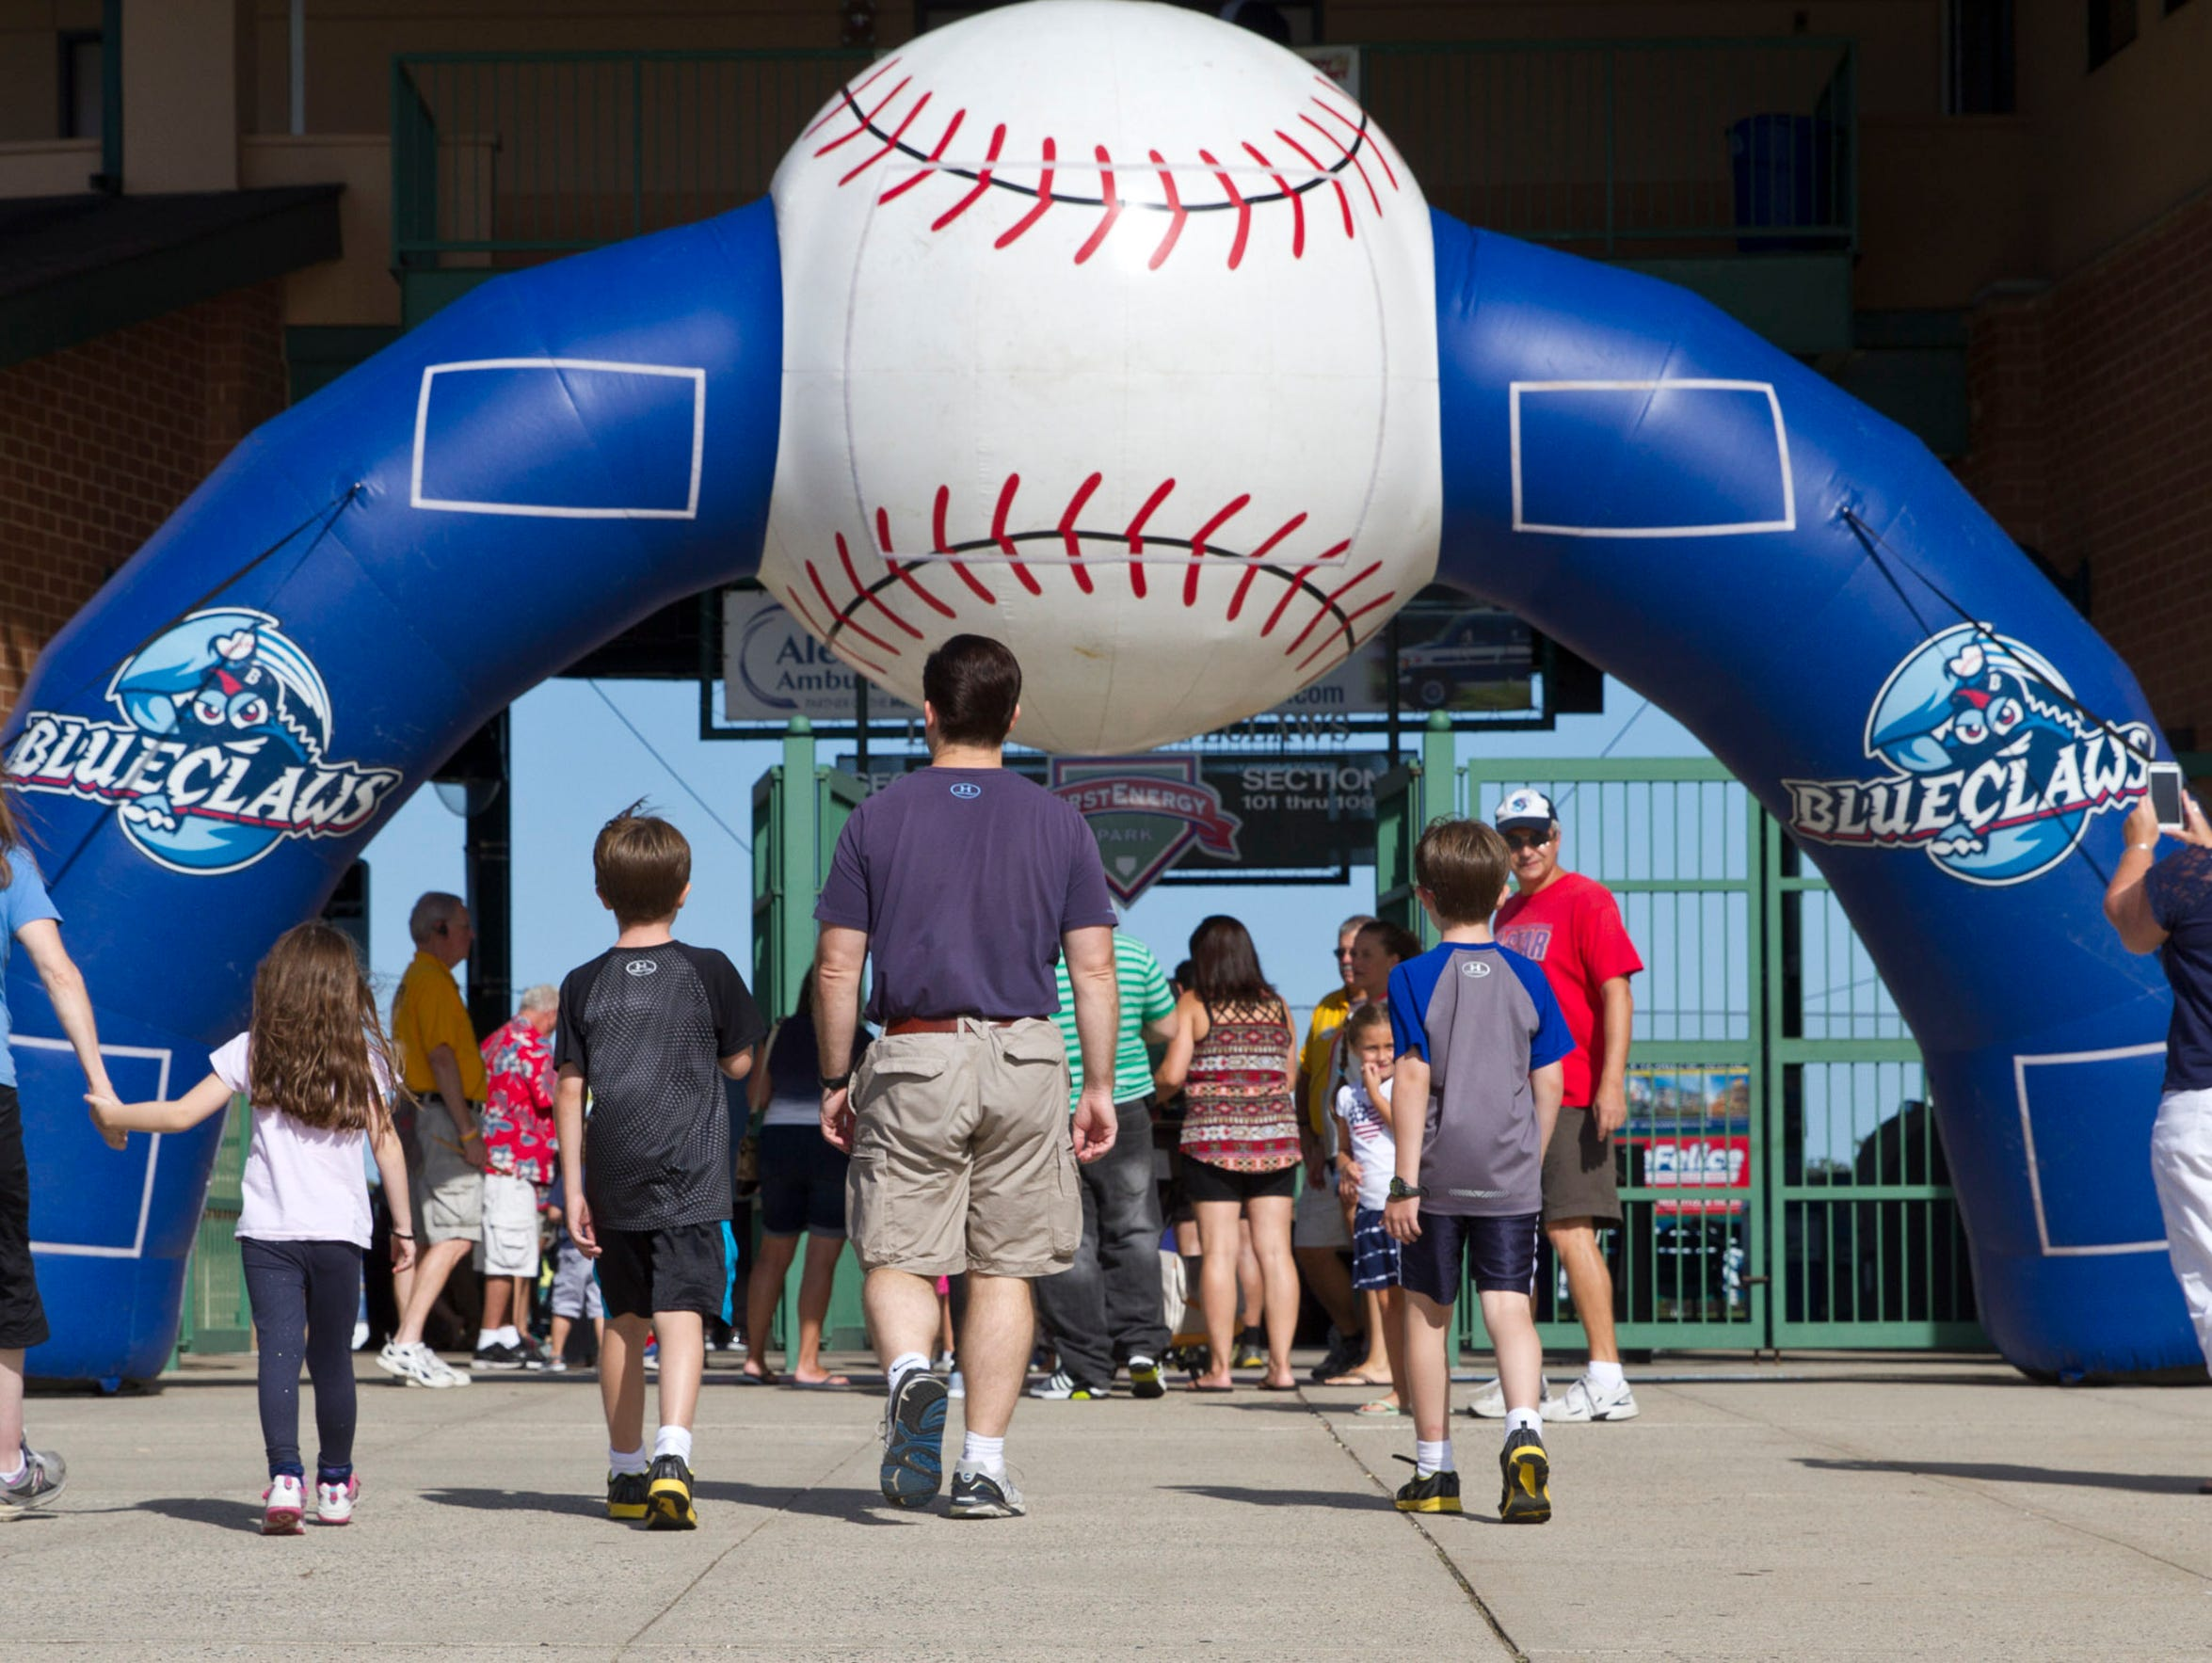 Fans enter the FirstEnergy Park.